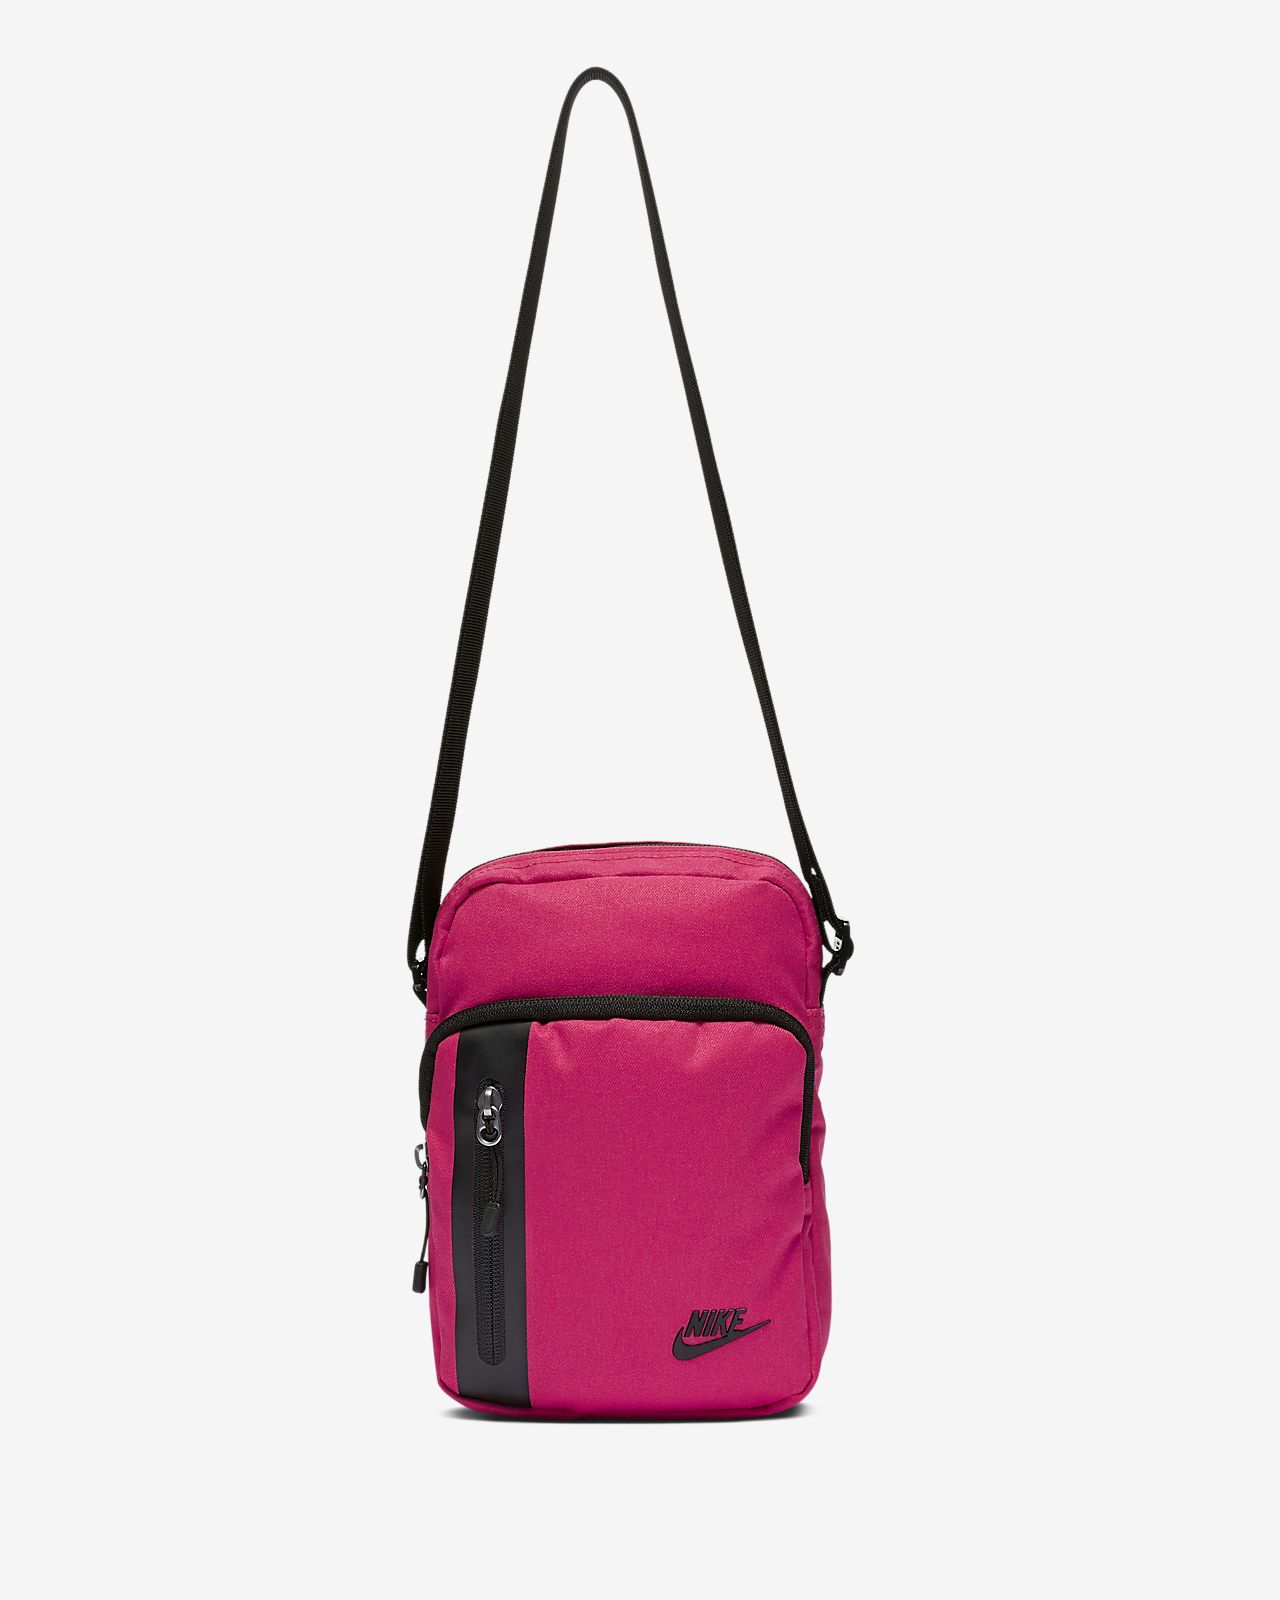 7cf9896cd14 cheap fashion brand nike core small items 3.0 bag pink differently ...